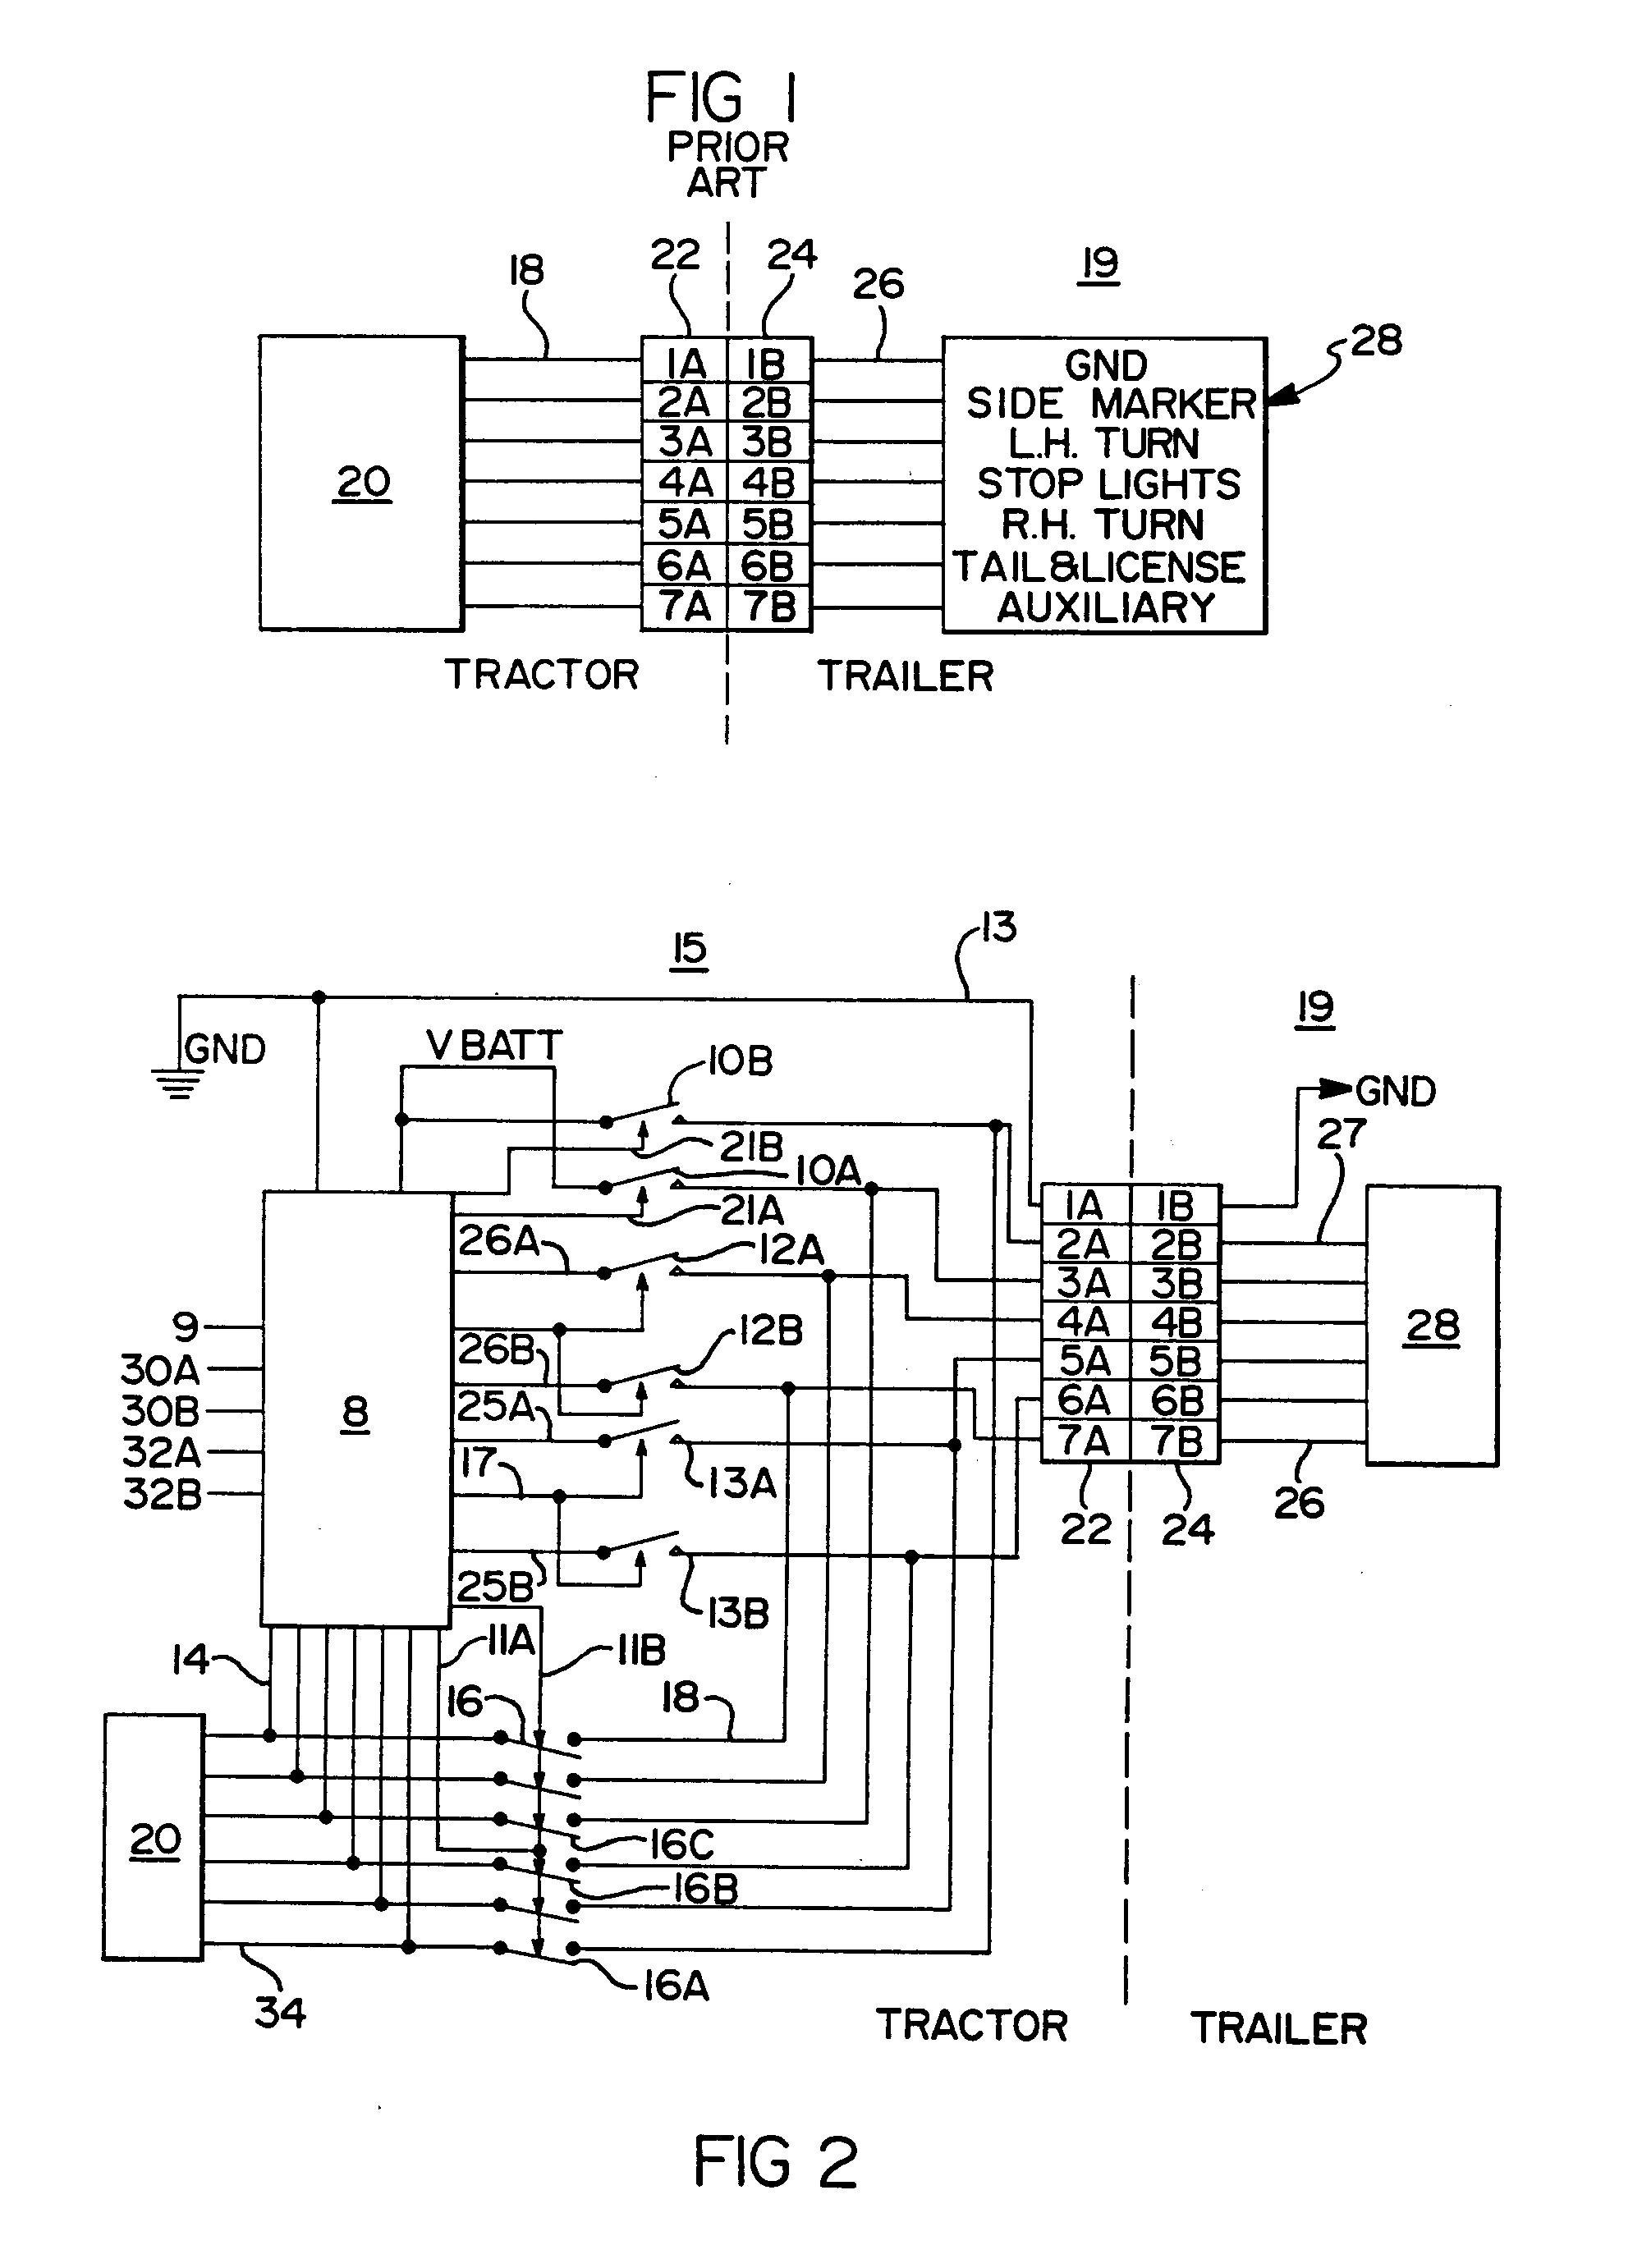 imgf0001?resize=665%2C919 bendix trailer abs wiring diagram bendix wiring diagrams collection meritor abs wiring diagram at crackthecode.co